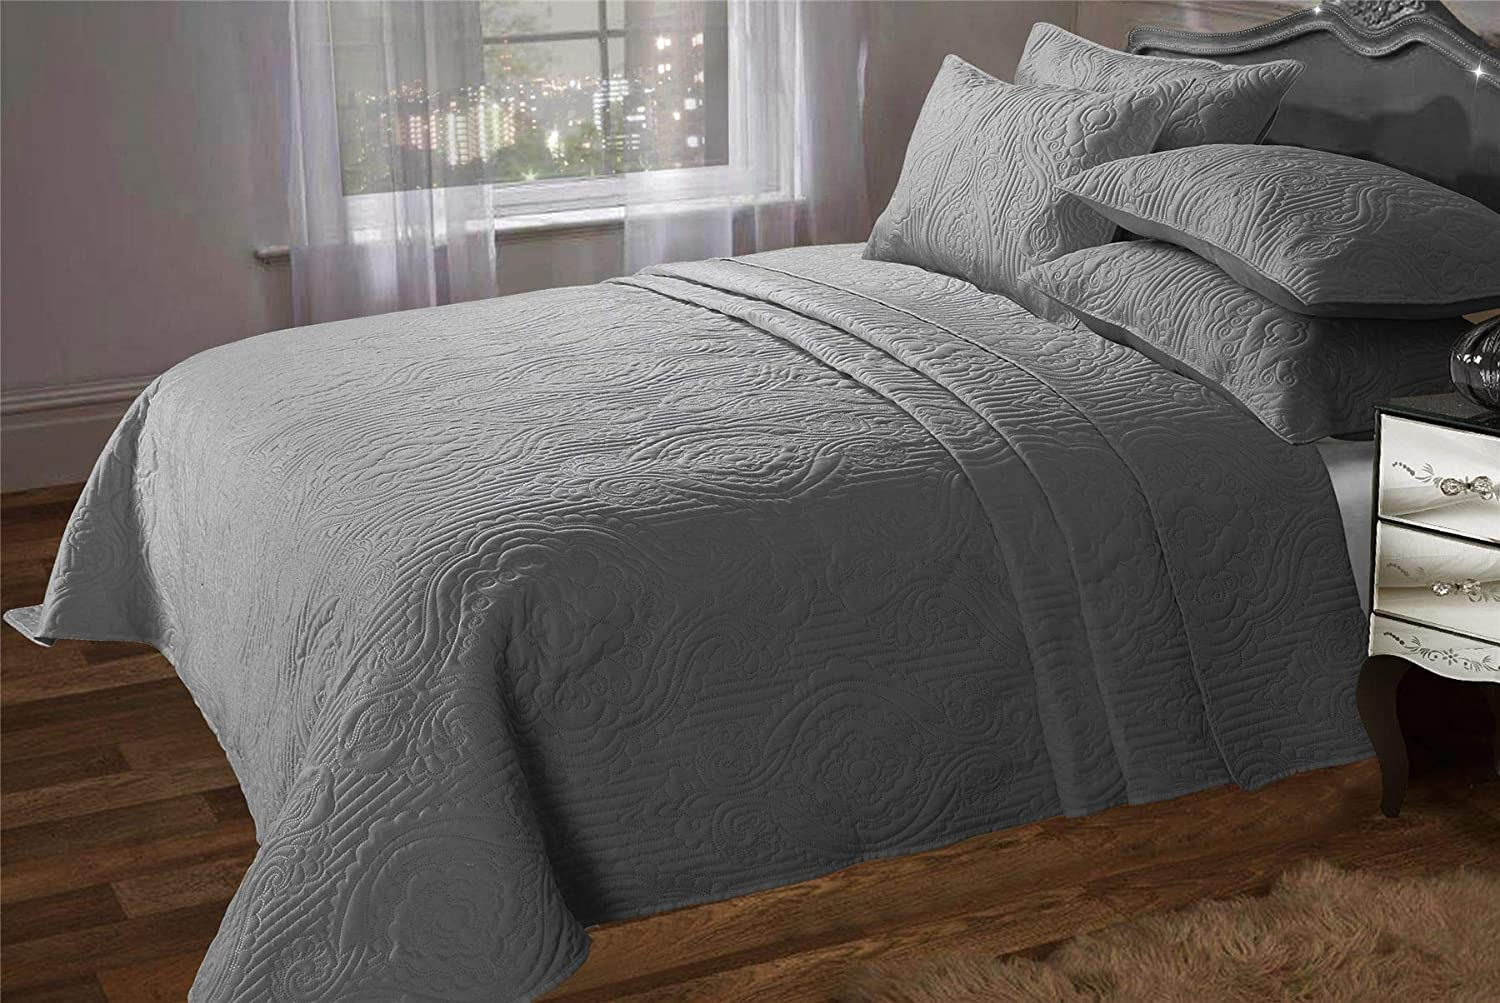 Olivia Rocco Sorrento Quilted Bedspread Designer Double King Comforter Throw White 240 x 260 cm